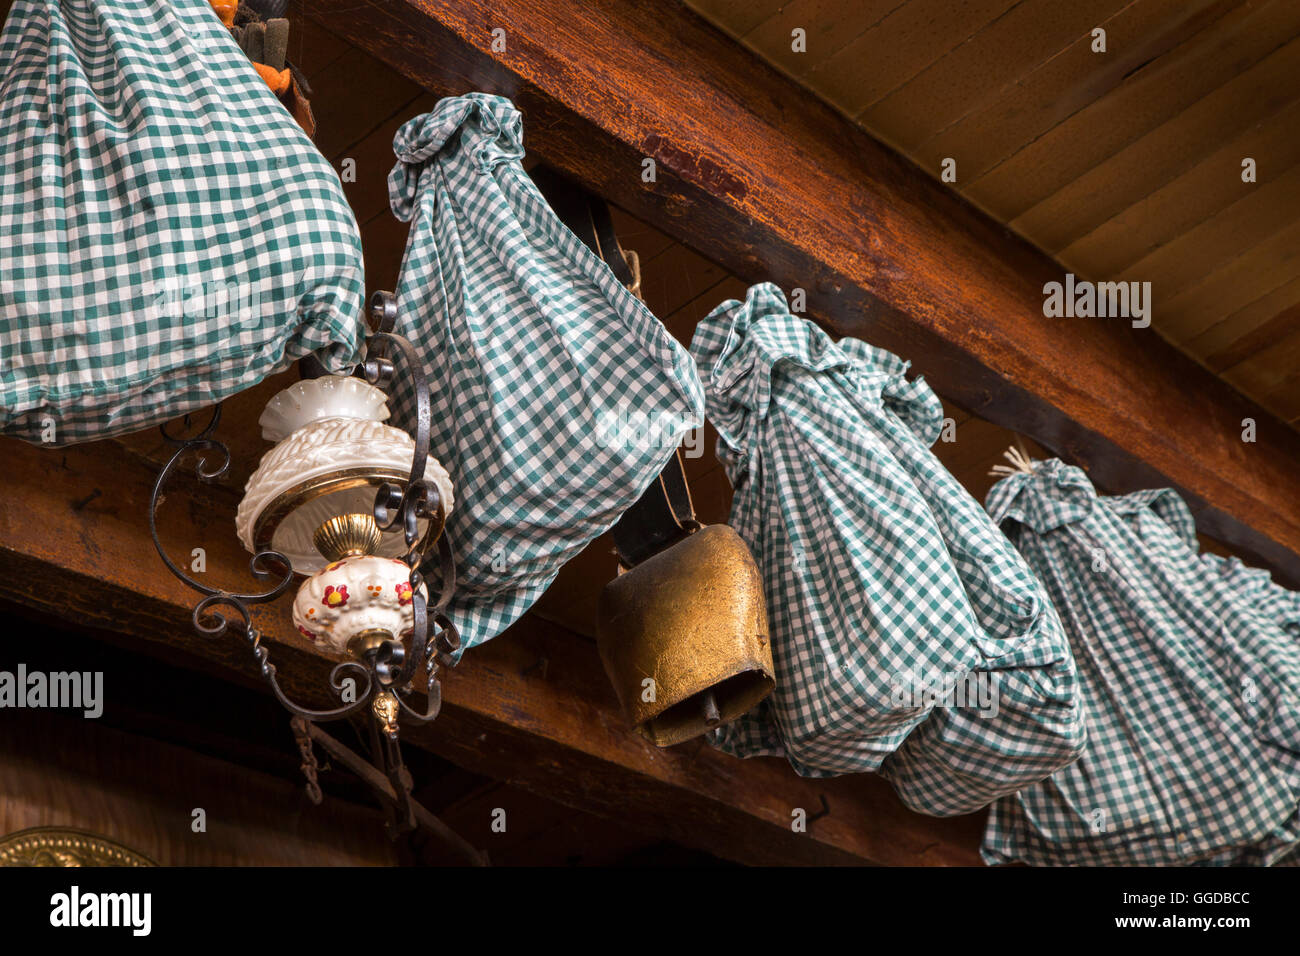 Hams wrapped in cloth for further aging and stored by hanging from the ceiling in farmhouse - Stock Image